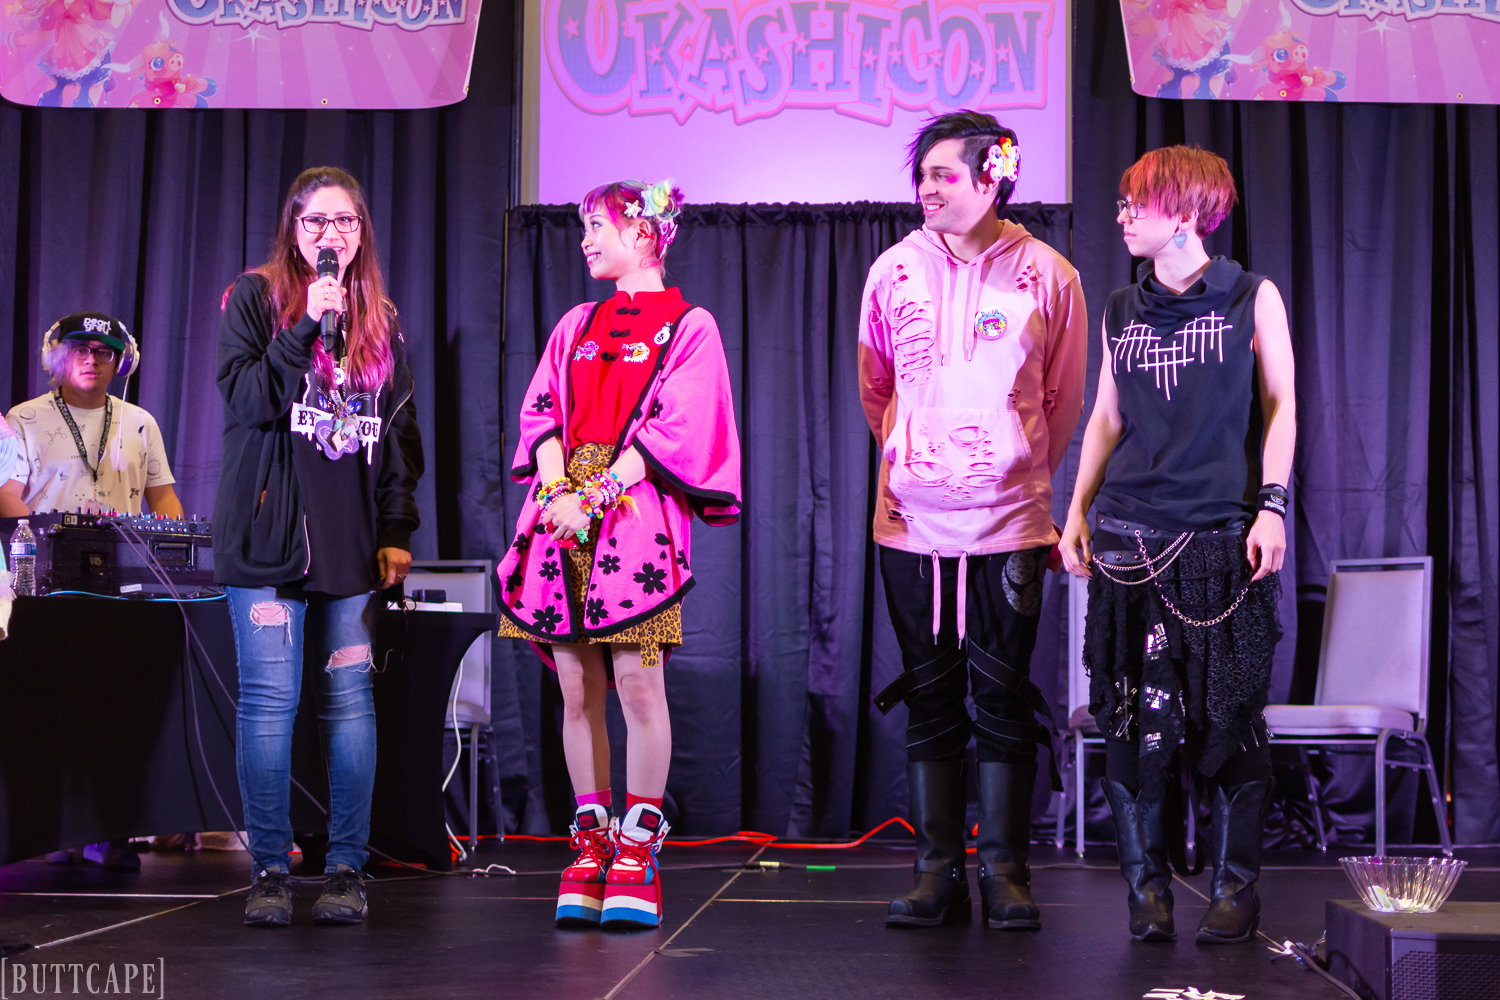 okashicon_party-5.jpg